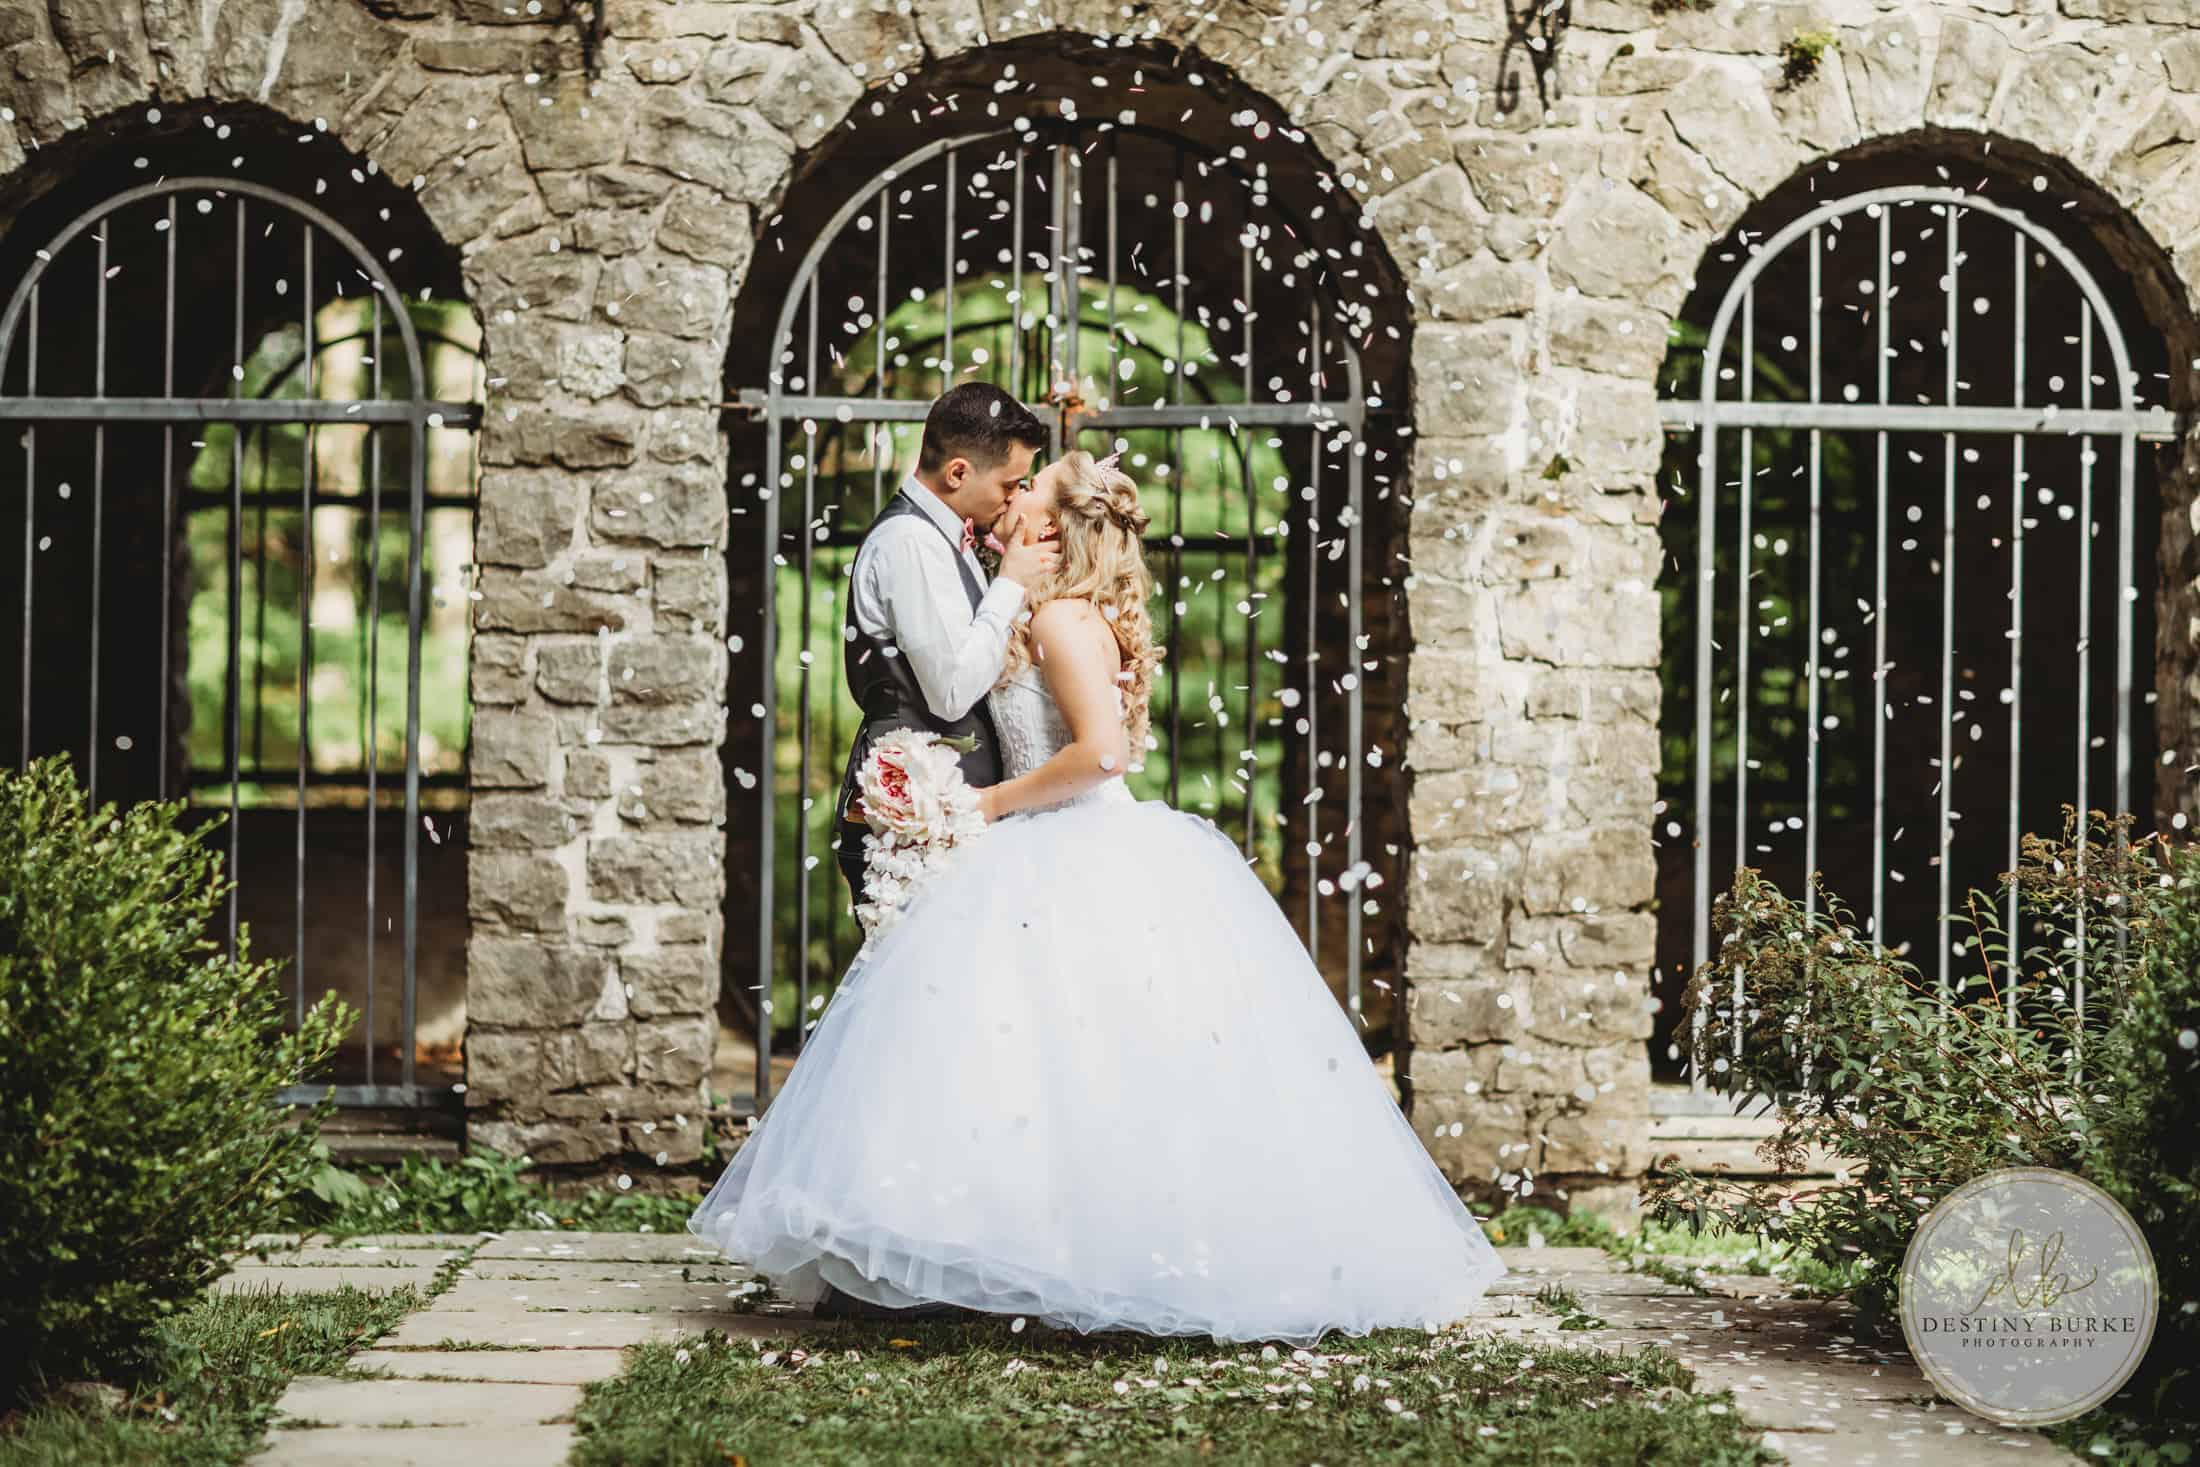 Sunken Gardens, Rochester, Wedding, Photography, Photographer, Confetti, Bride, Groom, Warner Castle, Highland Park